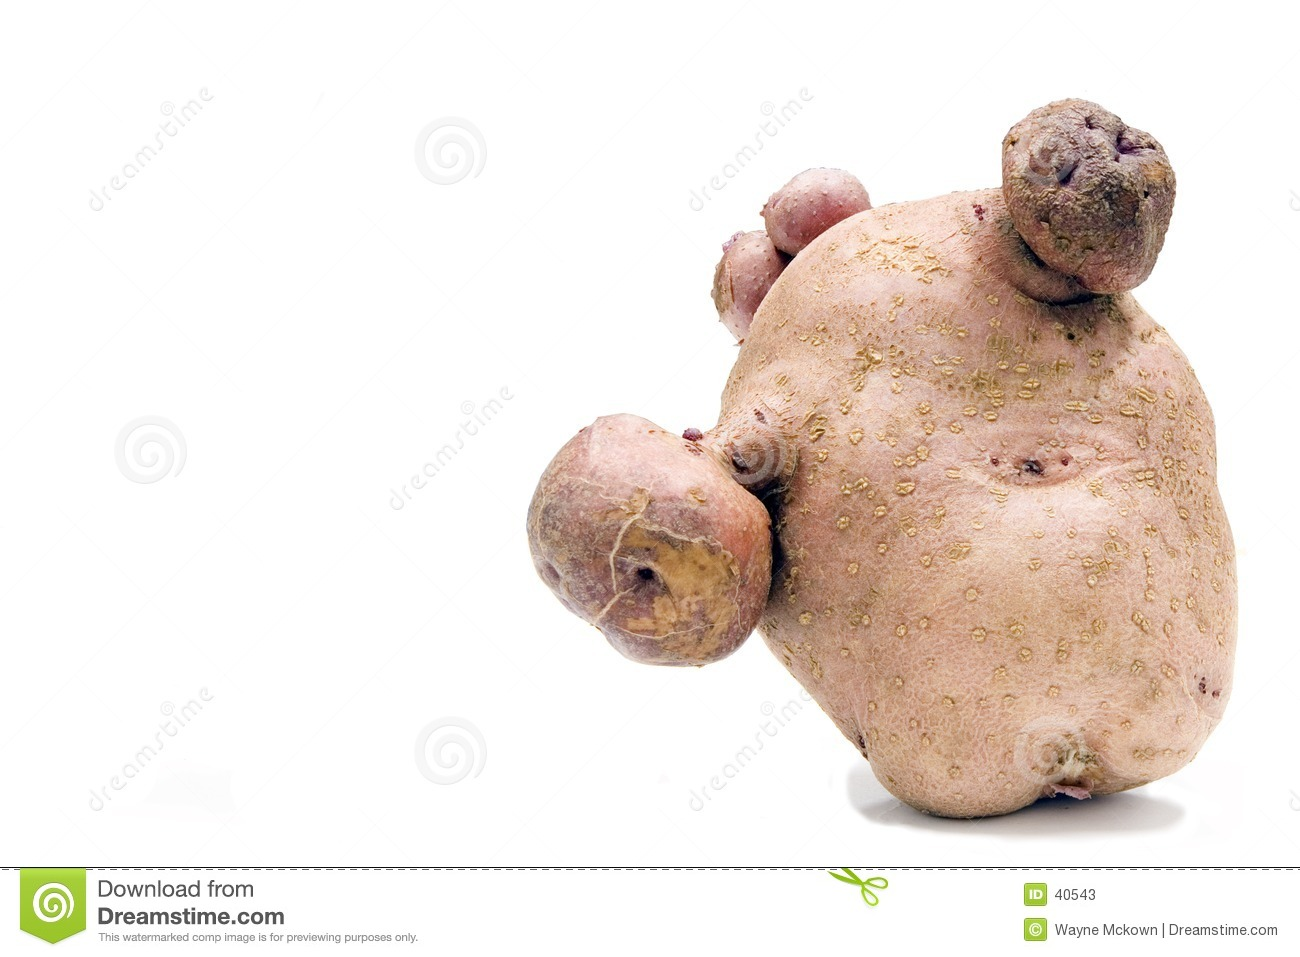 Disfigured potatoe